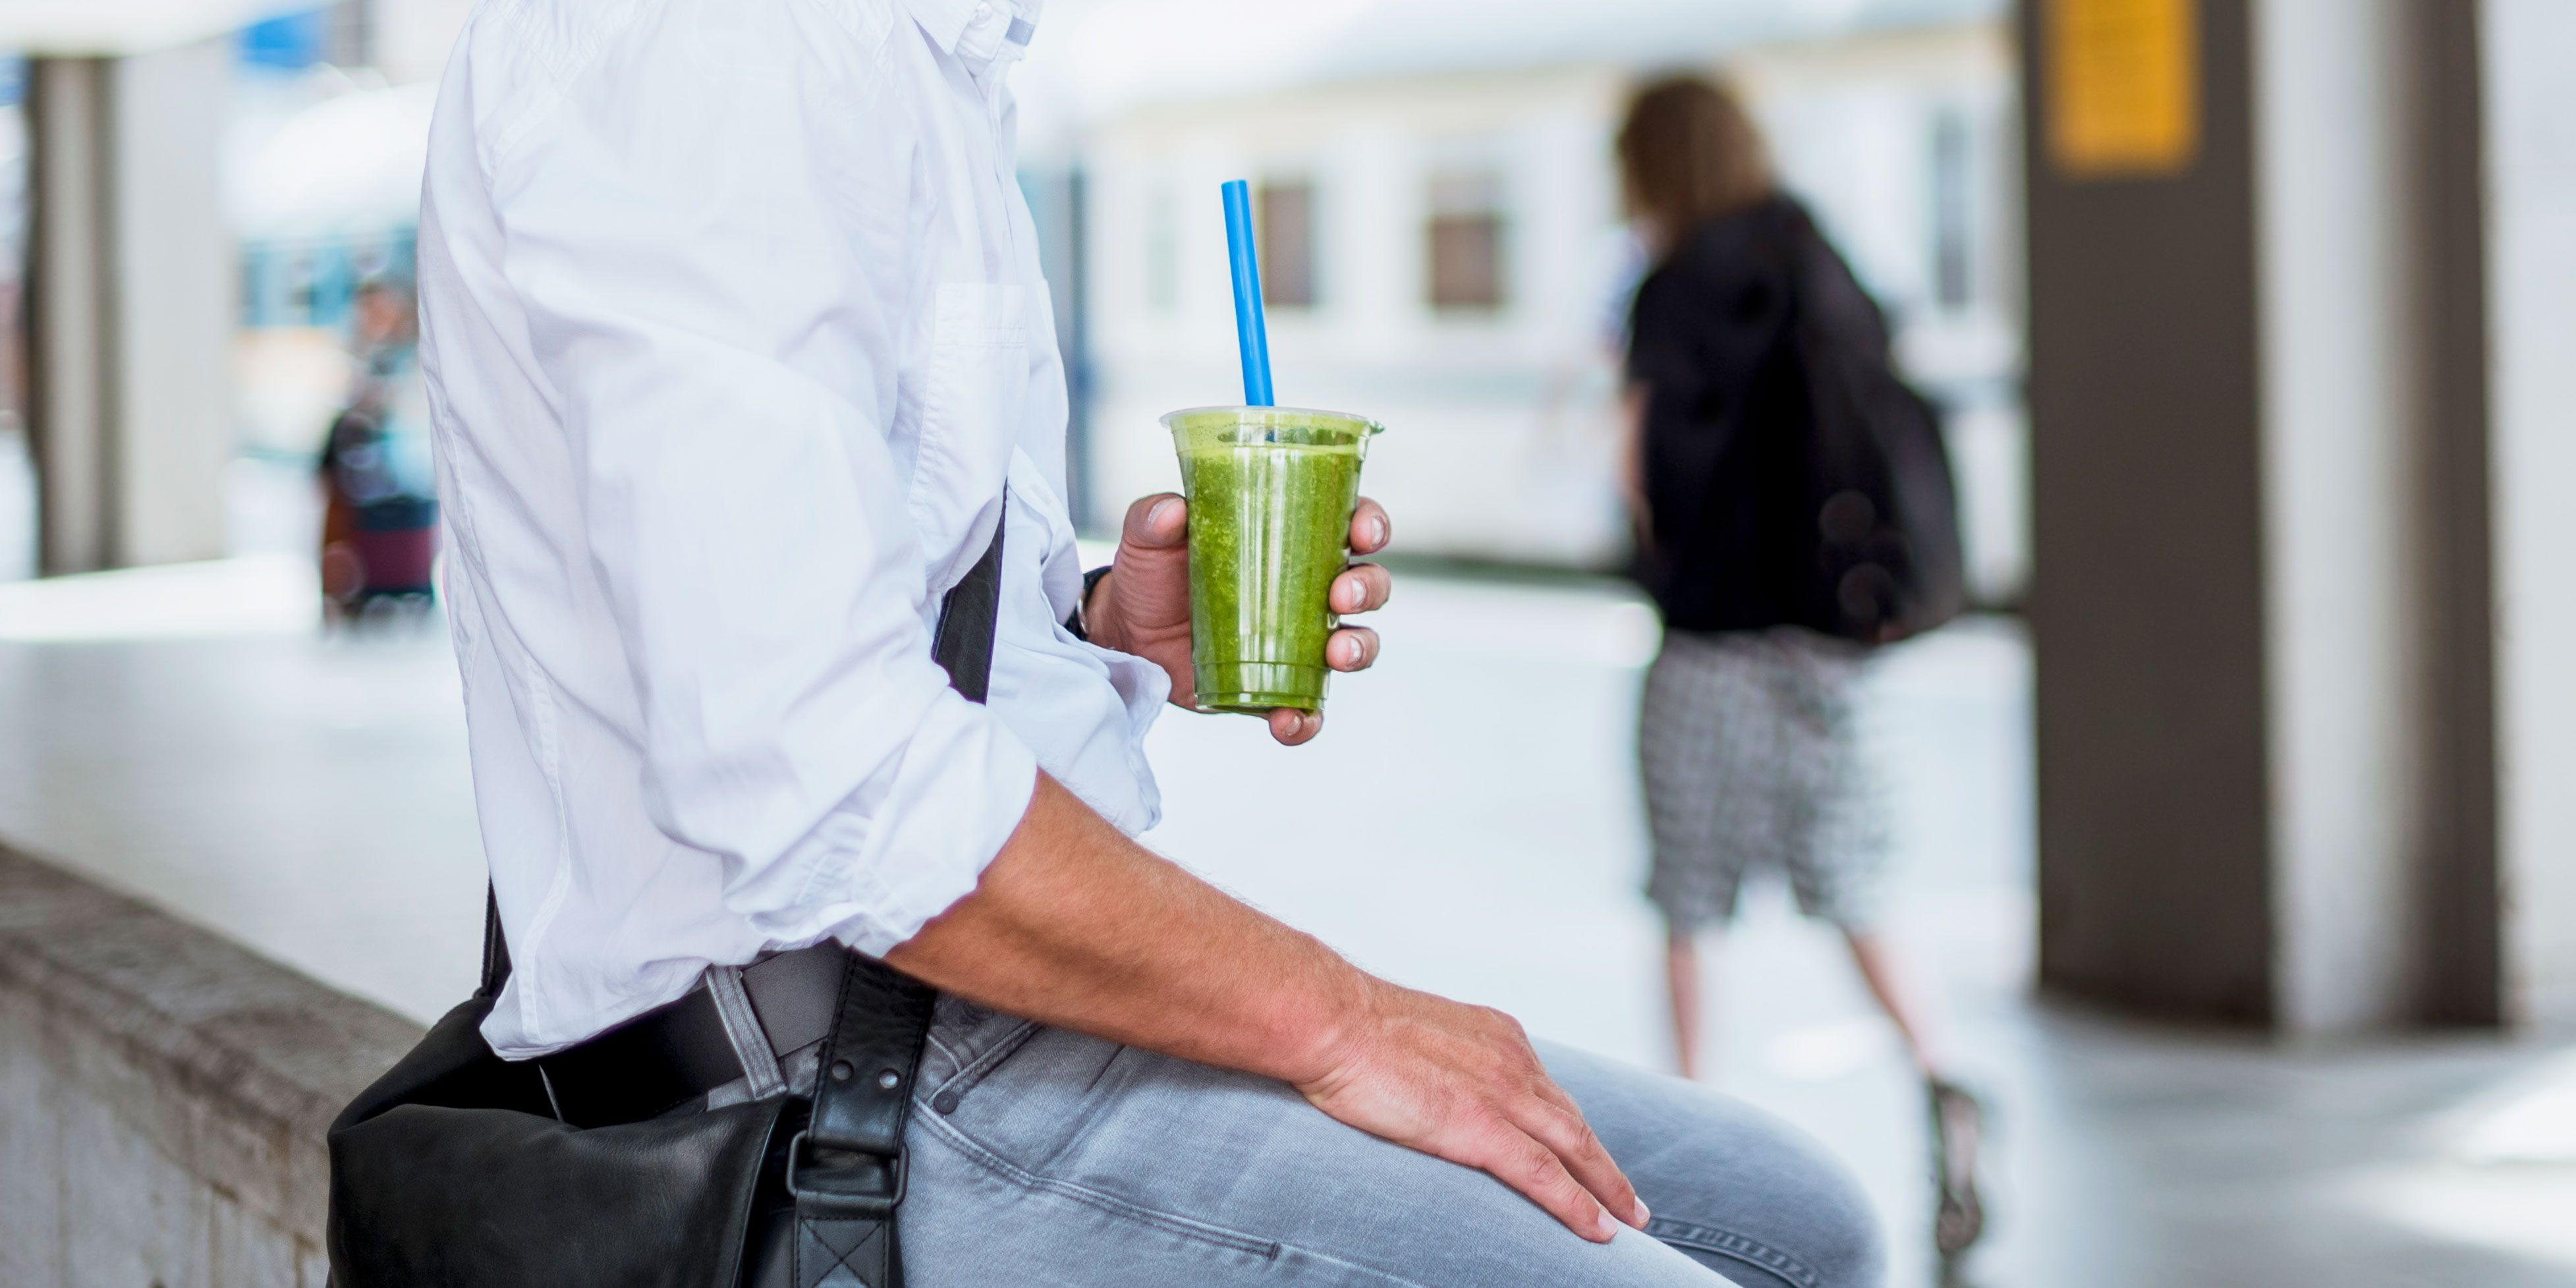 Juicing for Weight Loss: What Experts